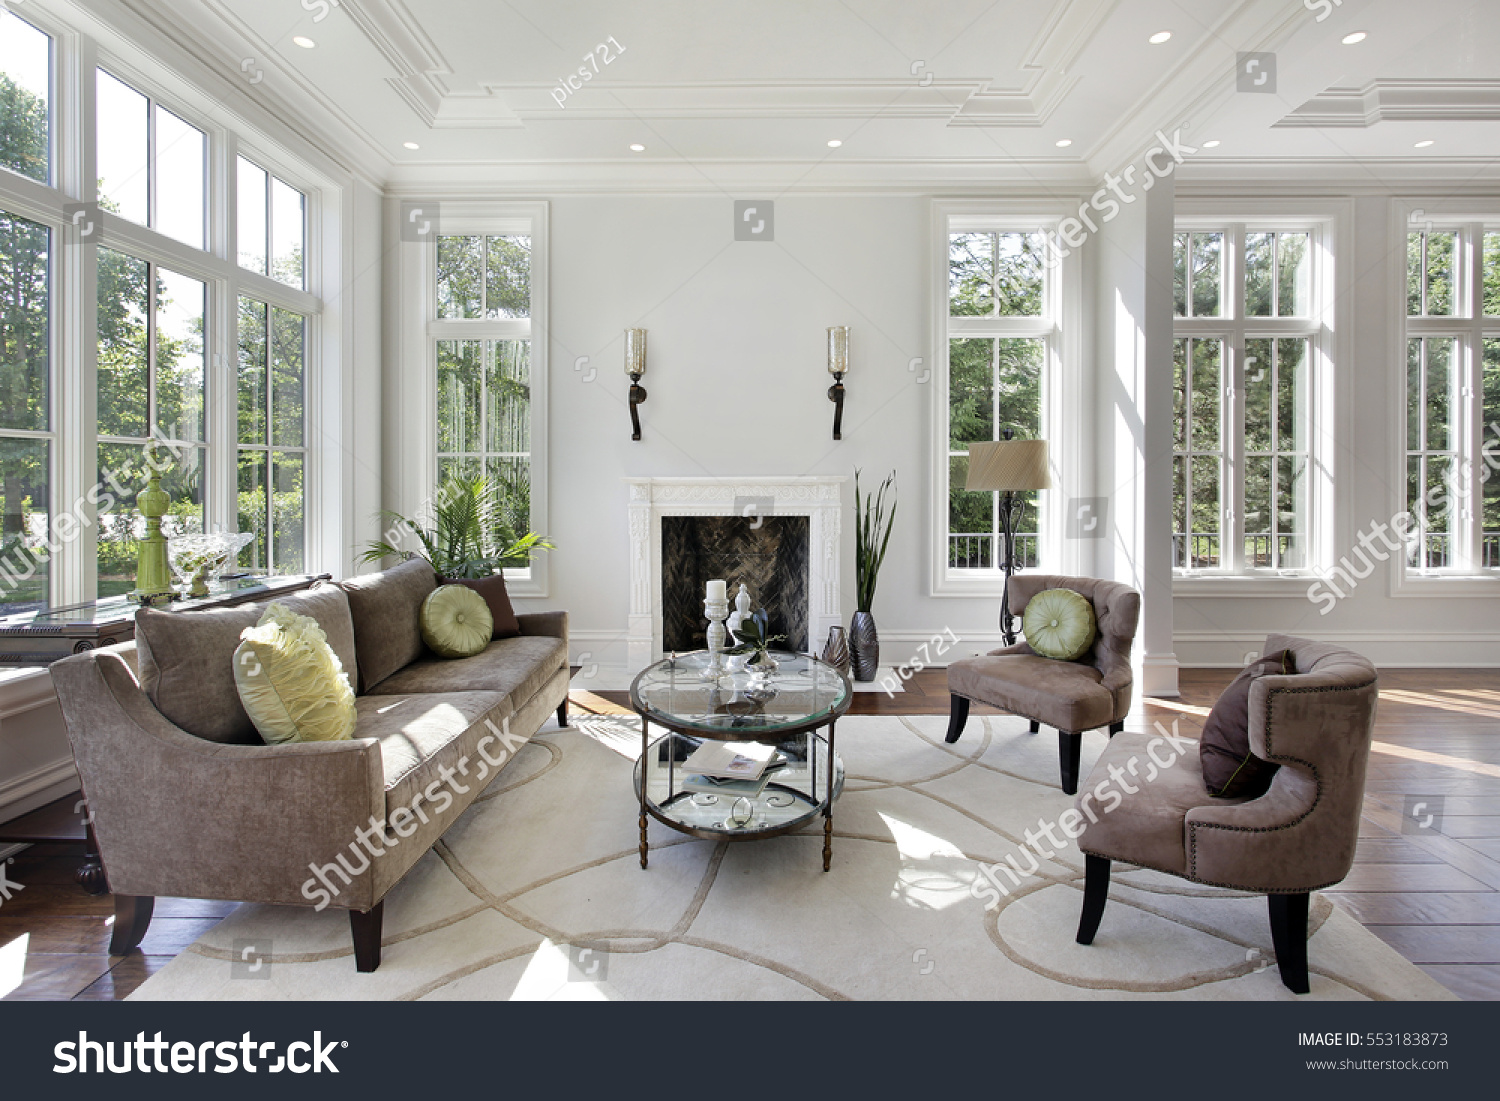 Living Room Luxury Home Fireplace Stock Photo 553183873 Shutterstock